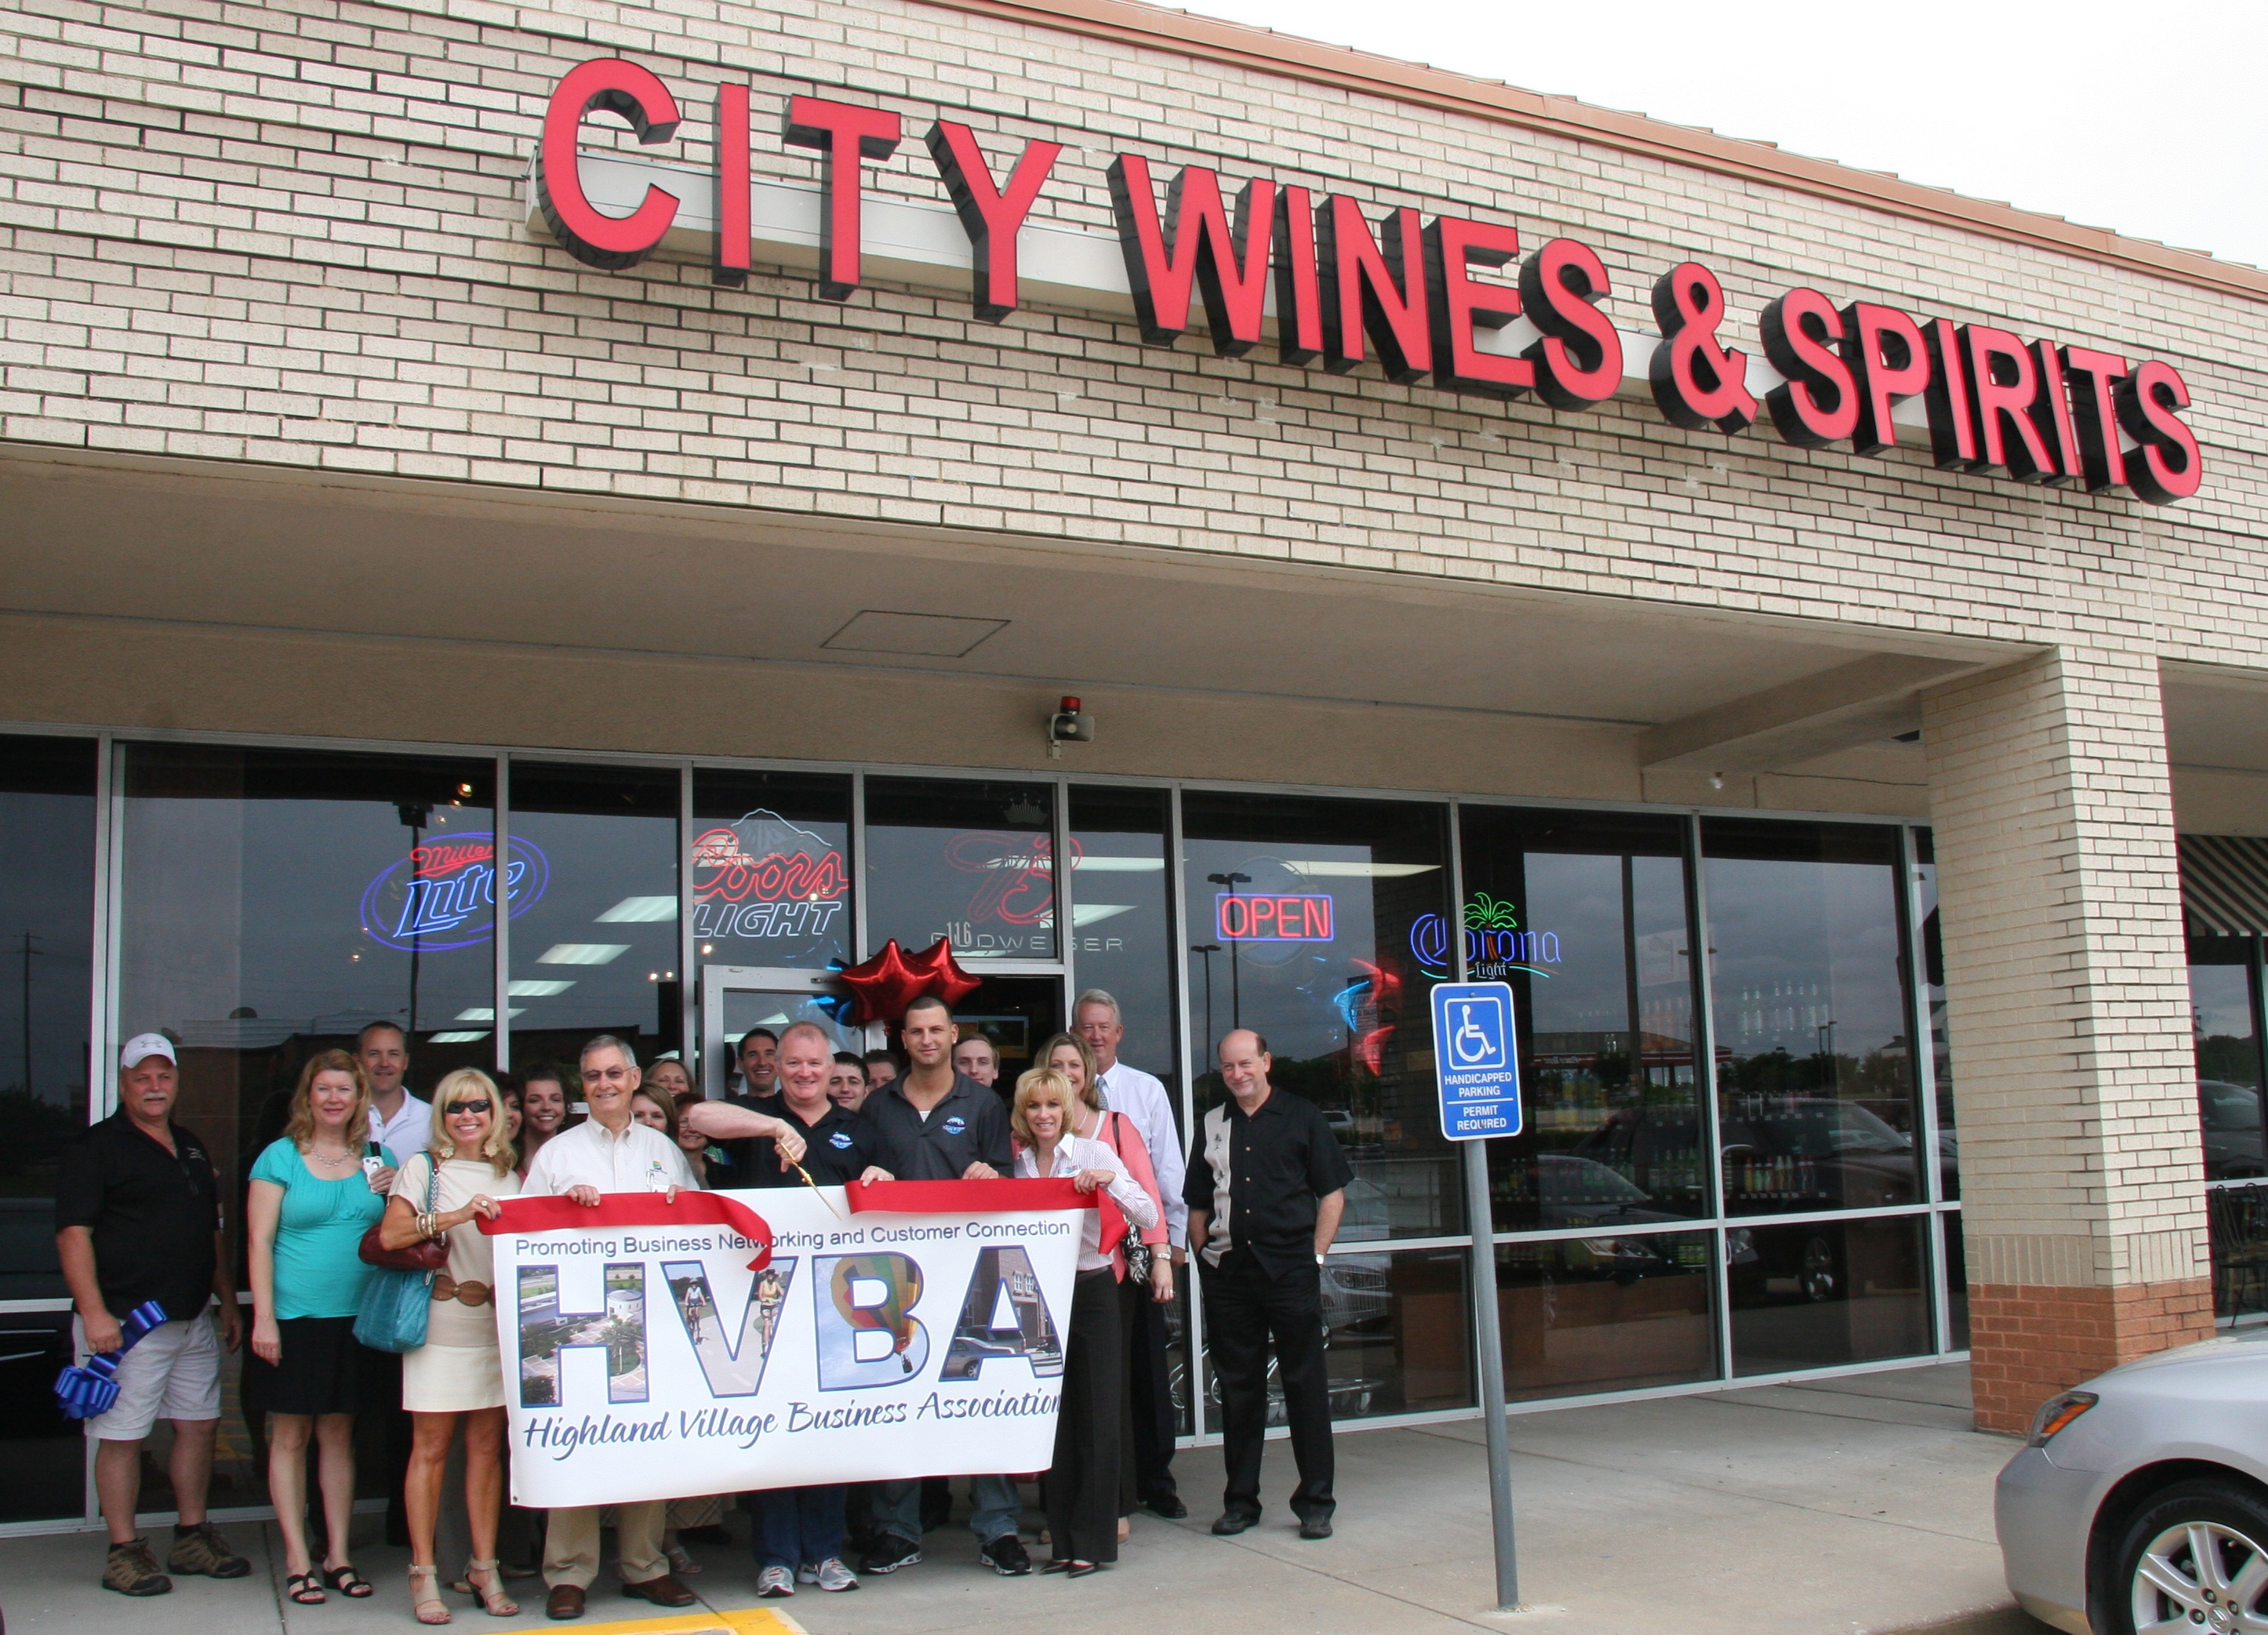 ribbon cuttinb - City Wines & Spirits